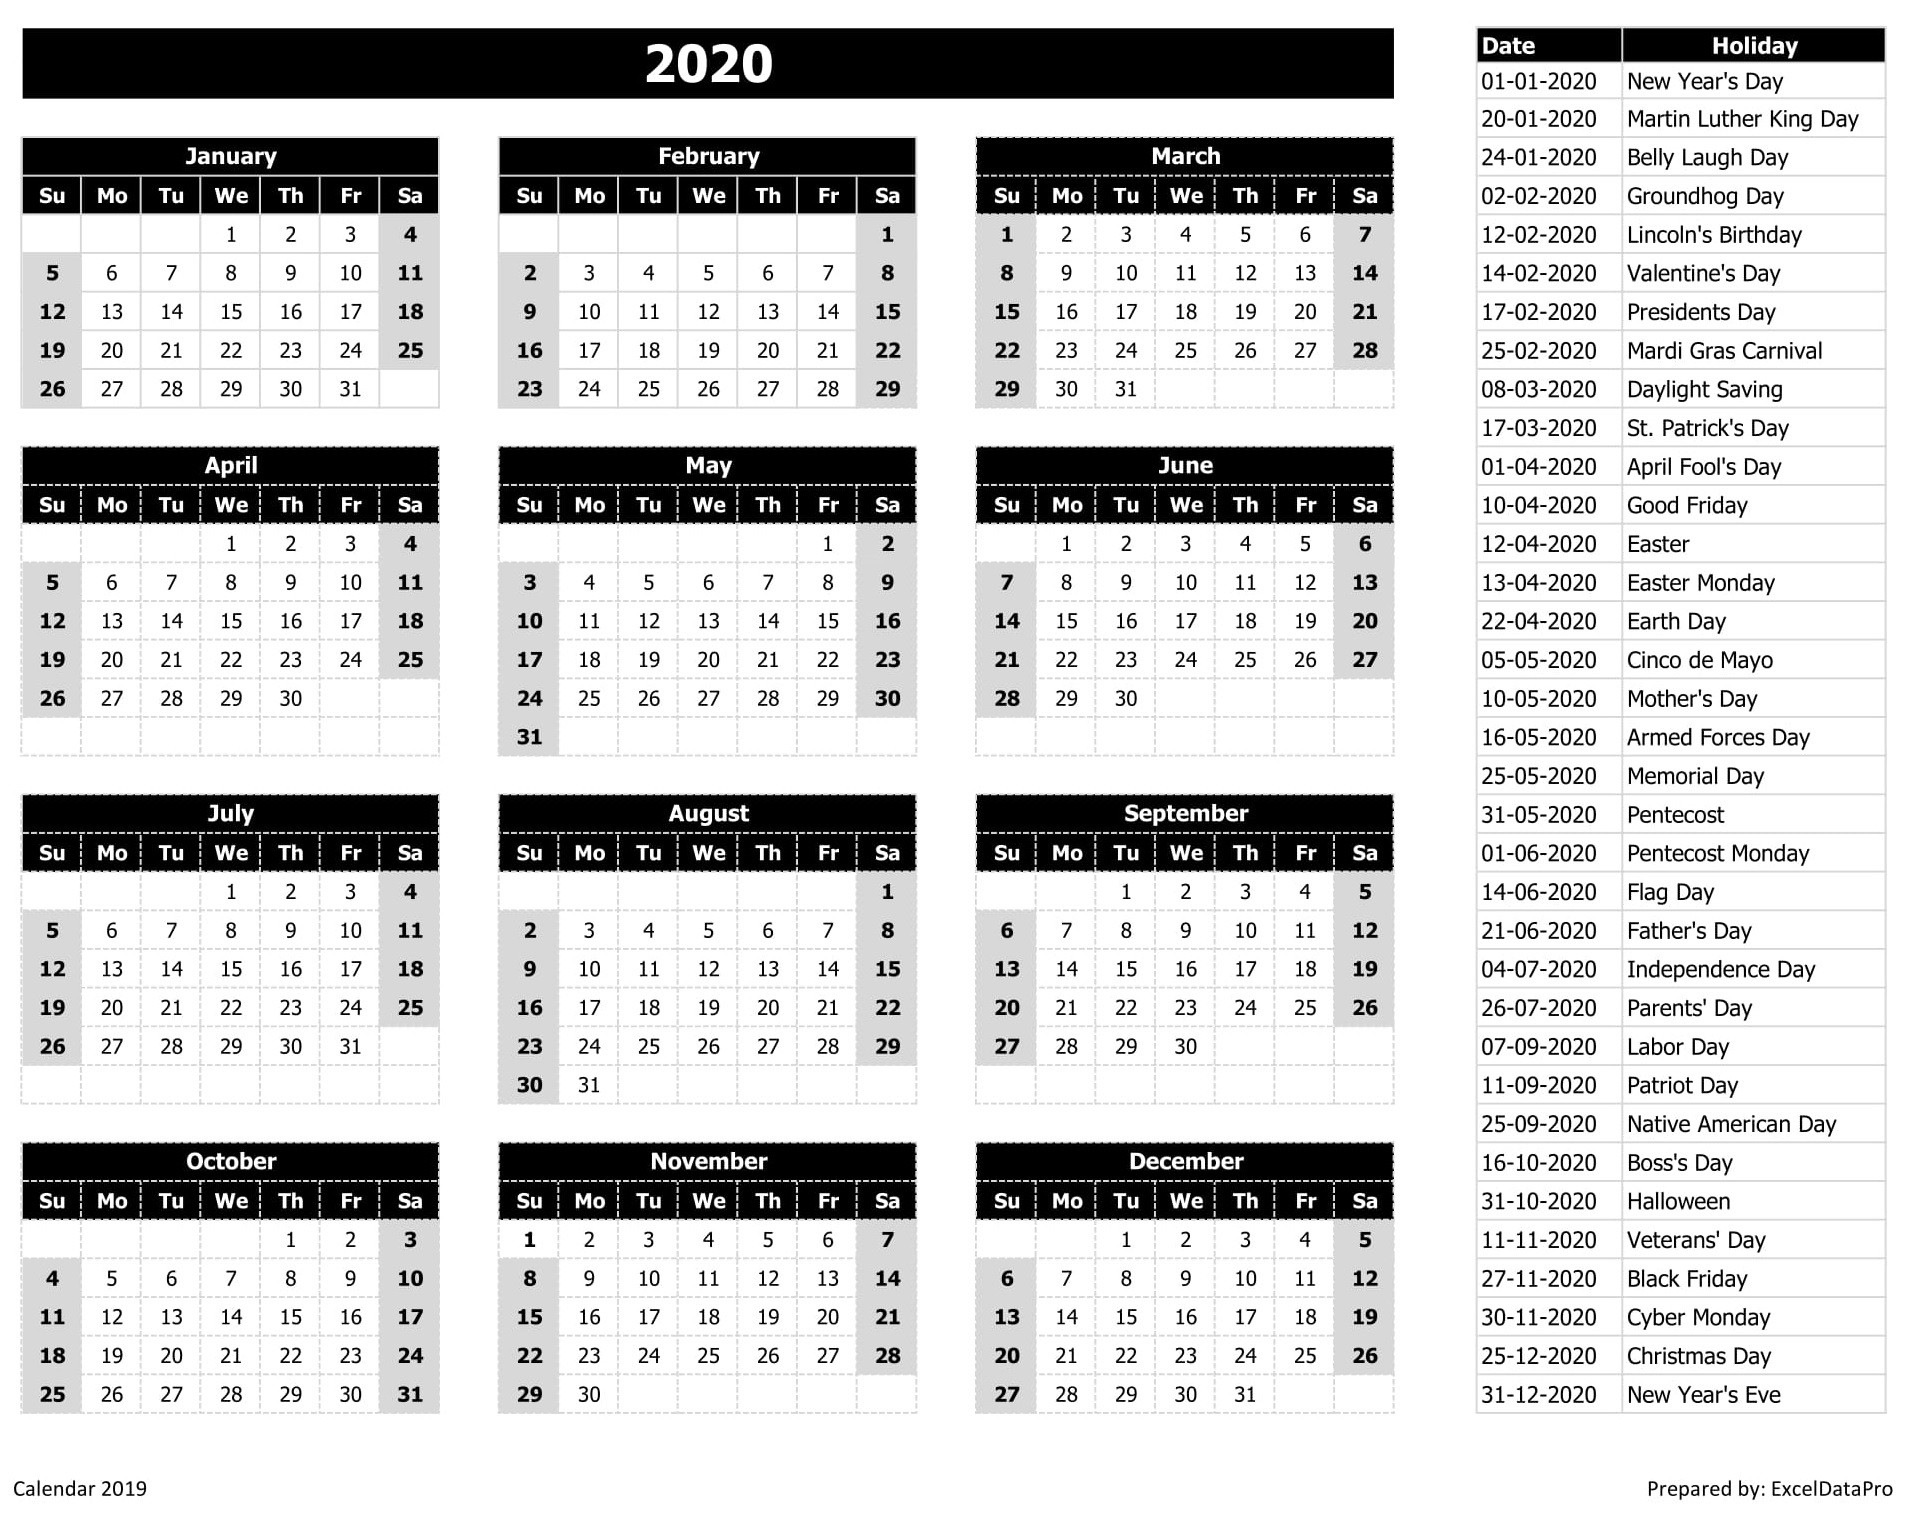 2020 Calendar Excel Templates, Printable Pdfs & Images-List Of Holidays 2020